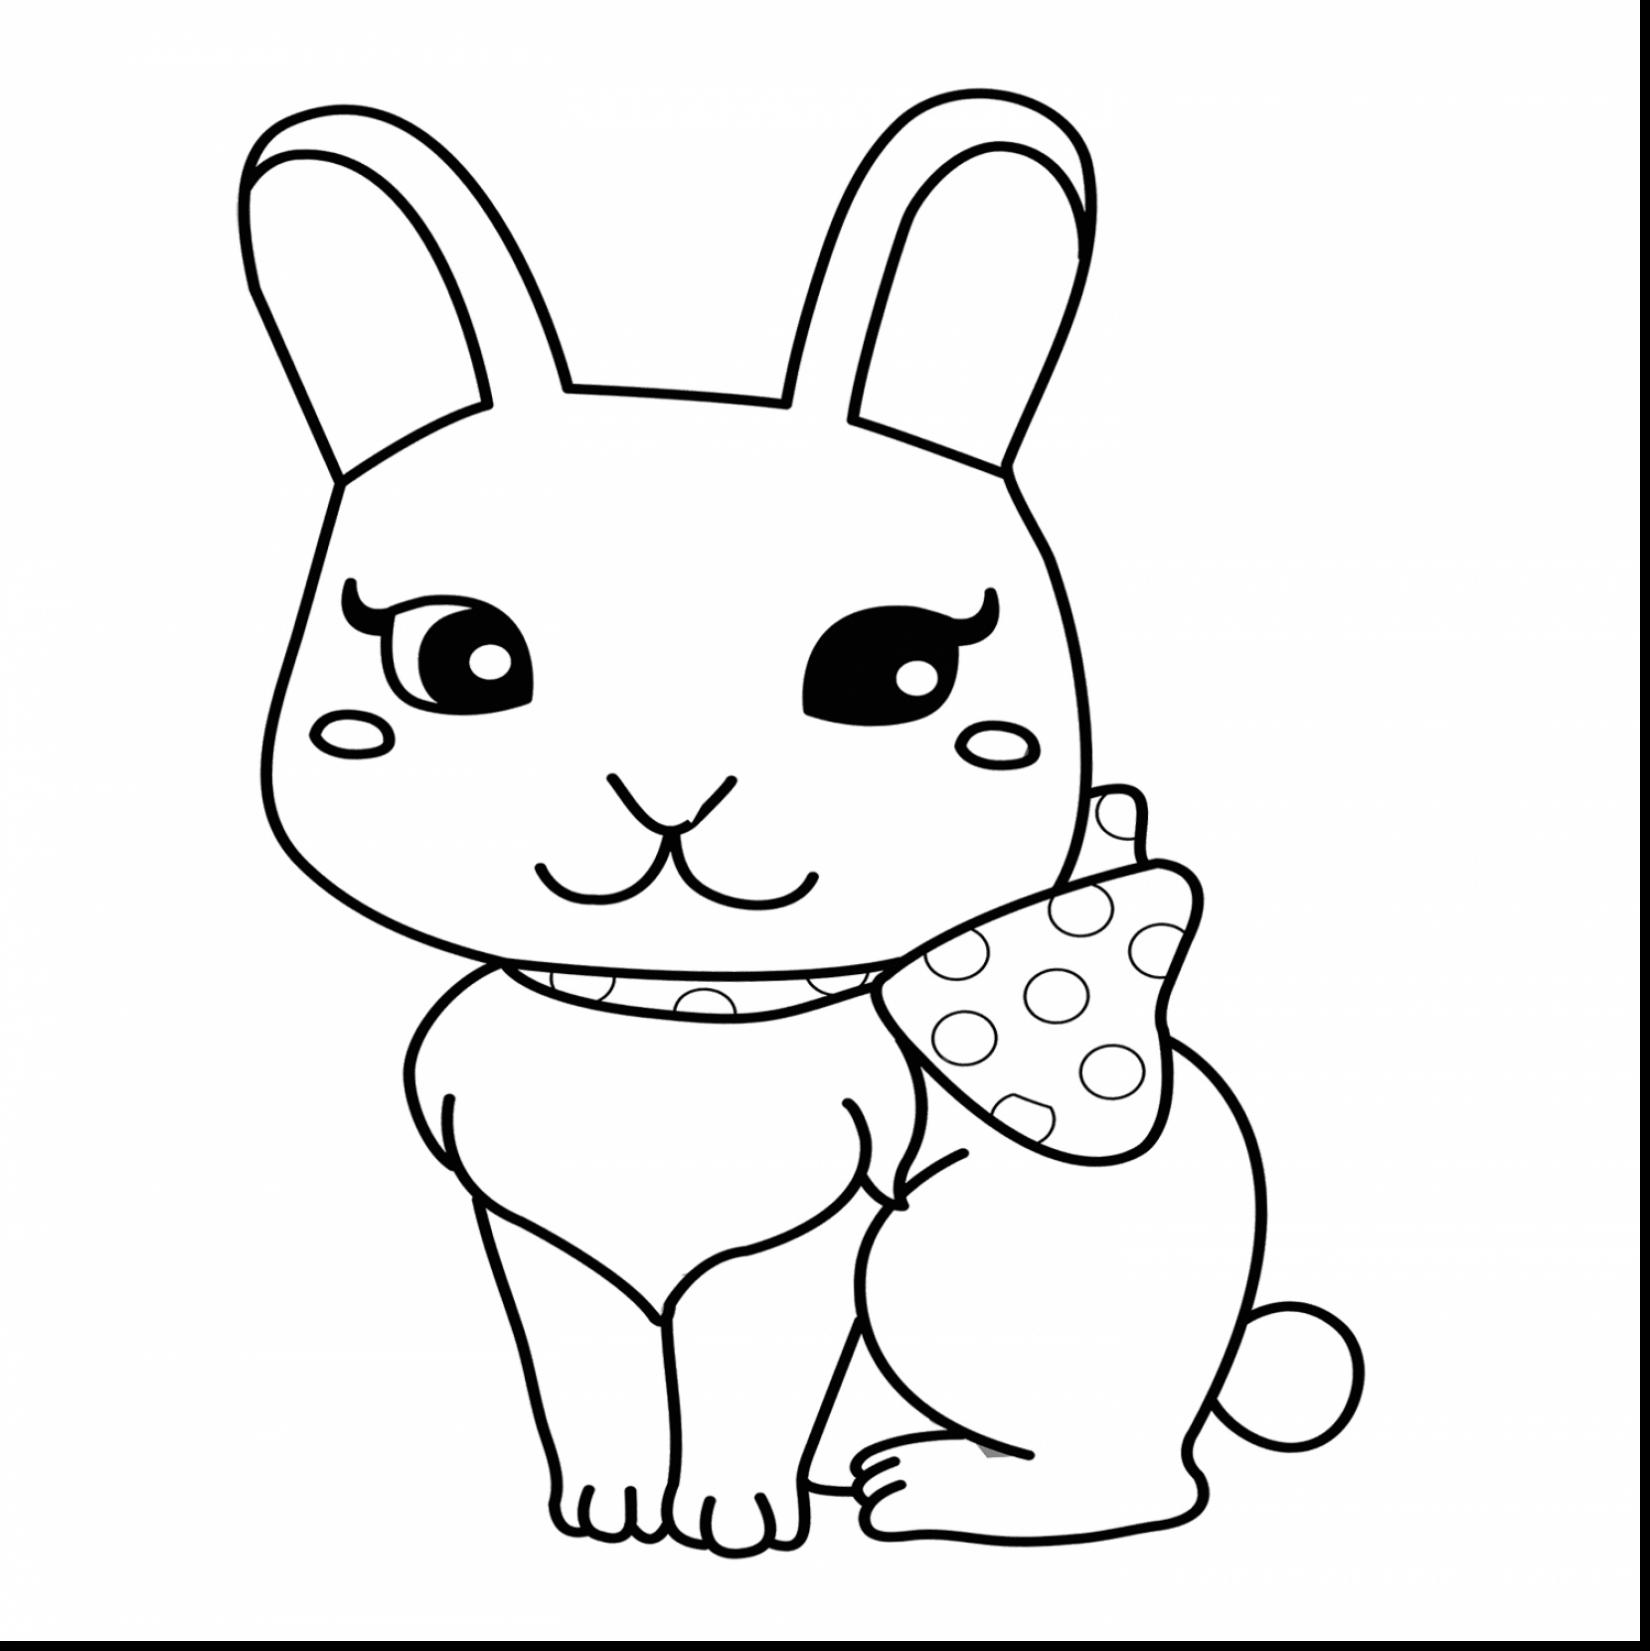 Cute Bunny Rabbit Drawing At Getdrawings Free For Personal Use